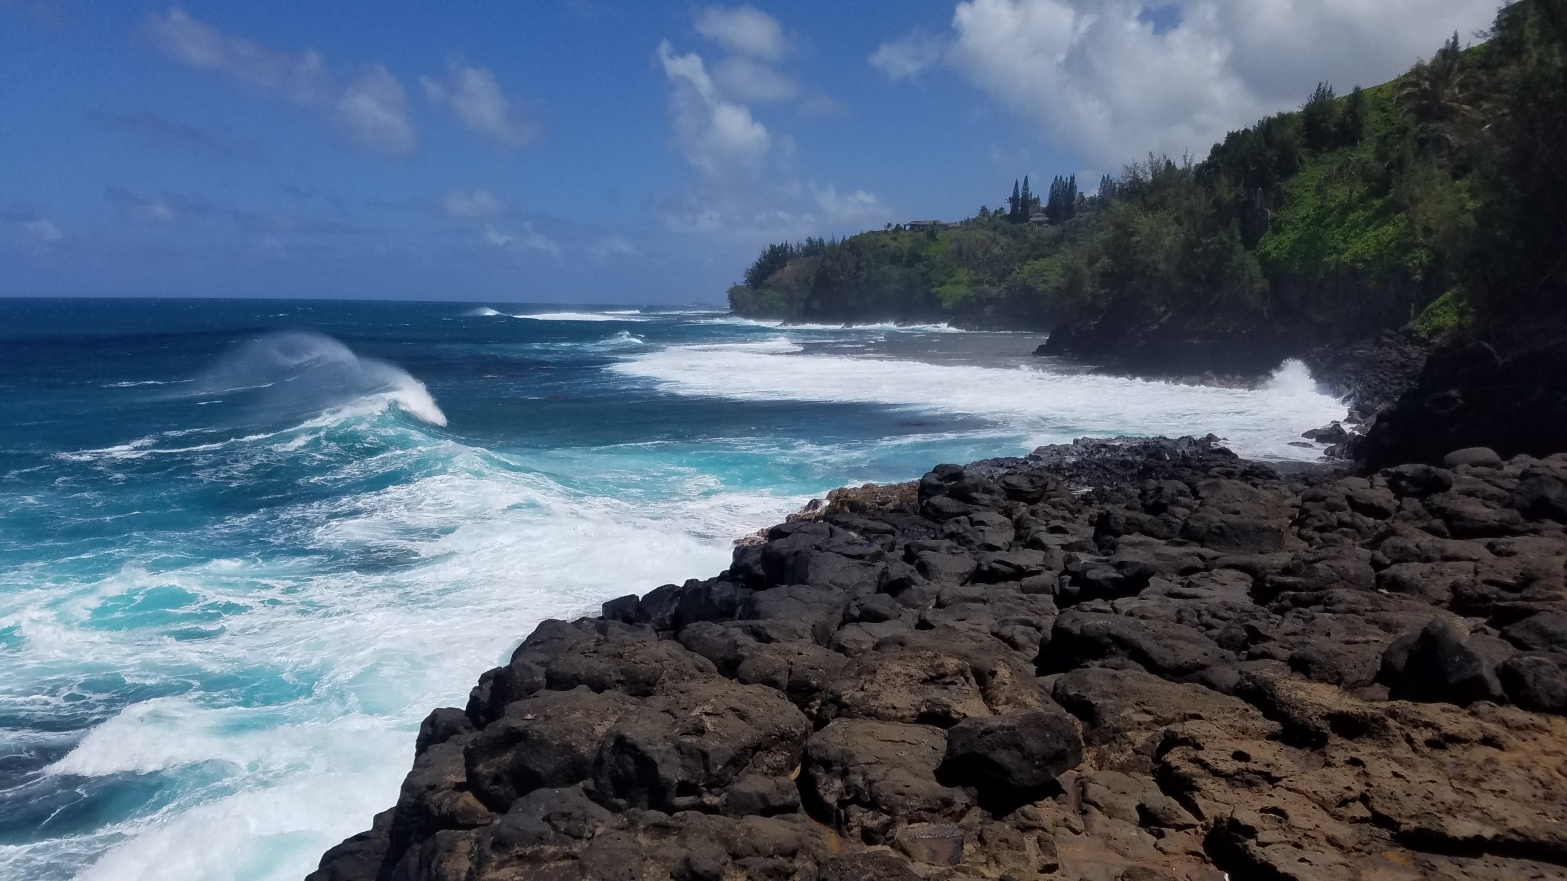 Kauai, Hawaii Travel Guide | Take a Surfing Lesson & Check out Queen's Bath